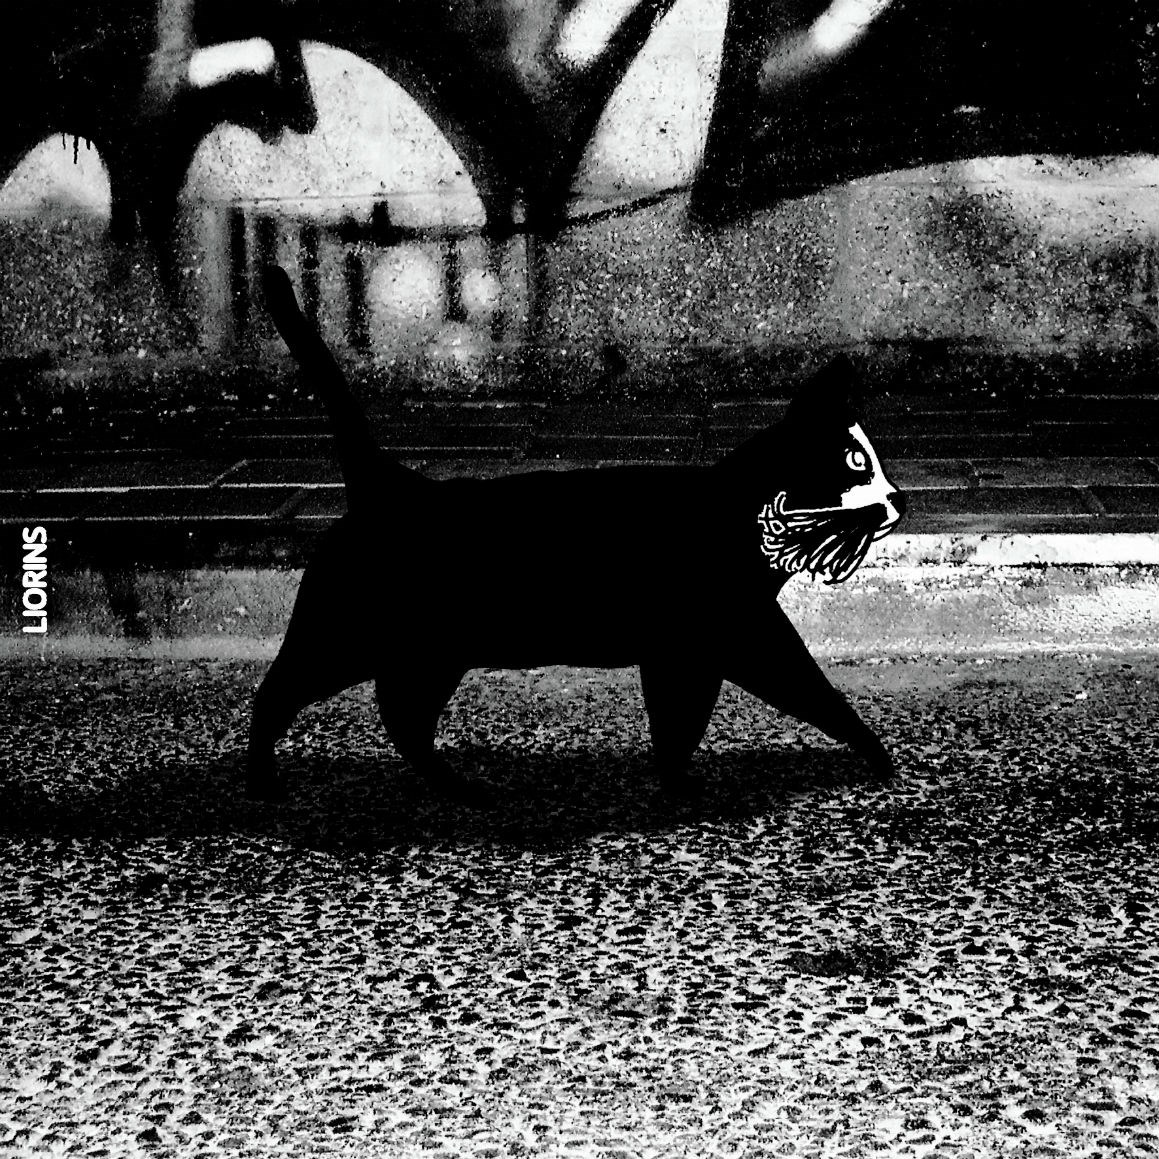 A Cat in a black night 2 - ליאורינס